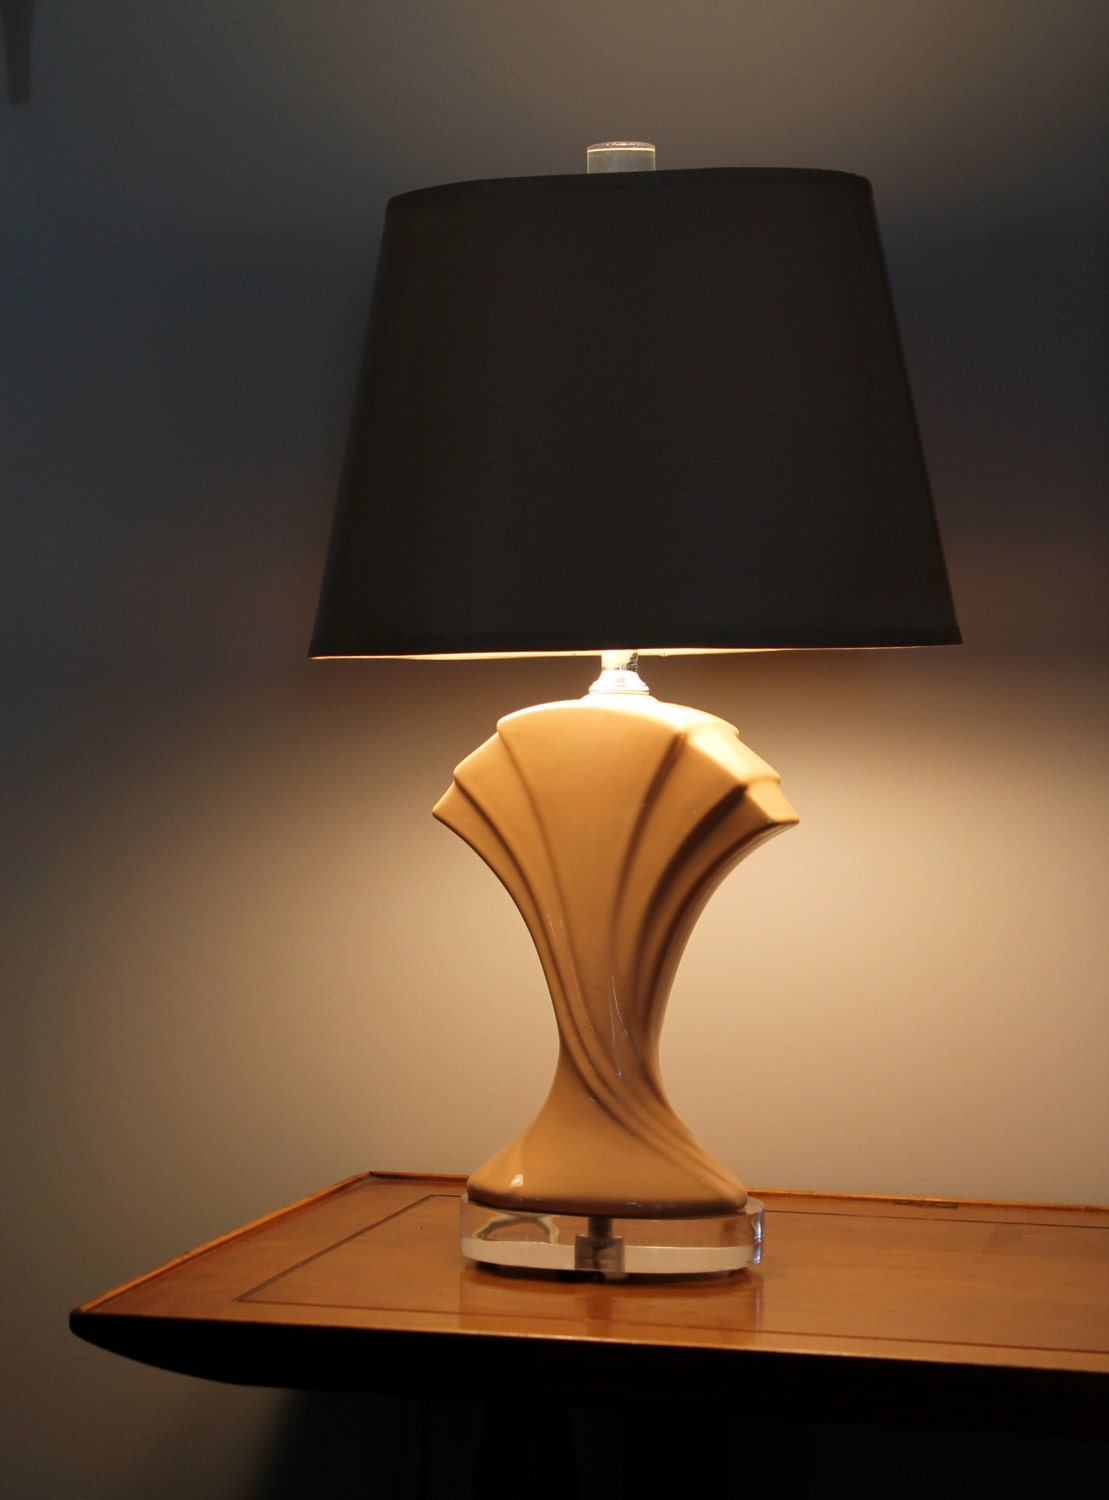 Retro Art Deco Table Lamp 70s 80s Glamour By Rhanvintage